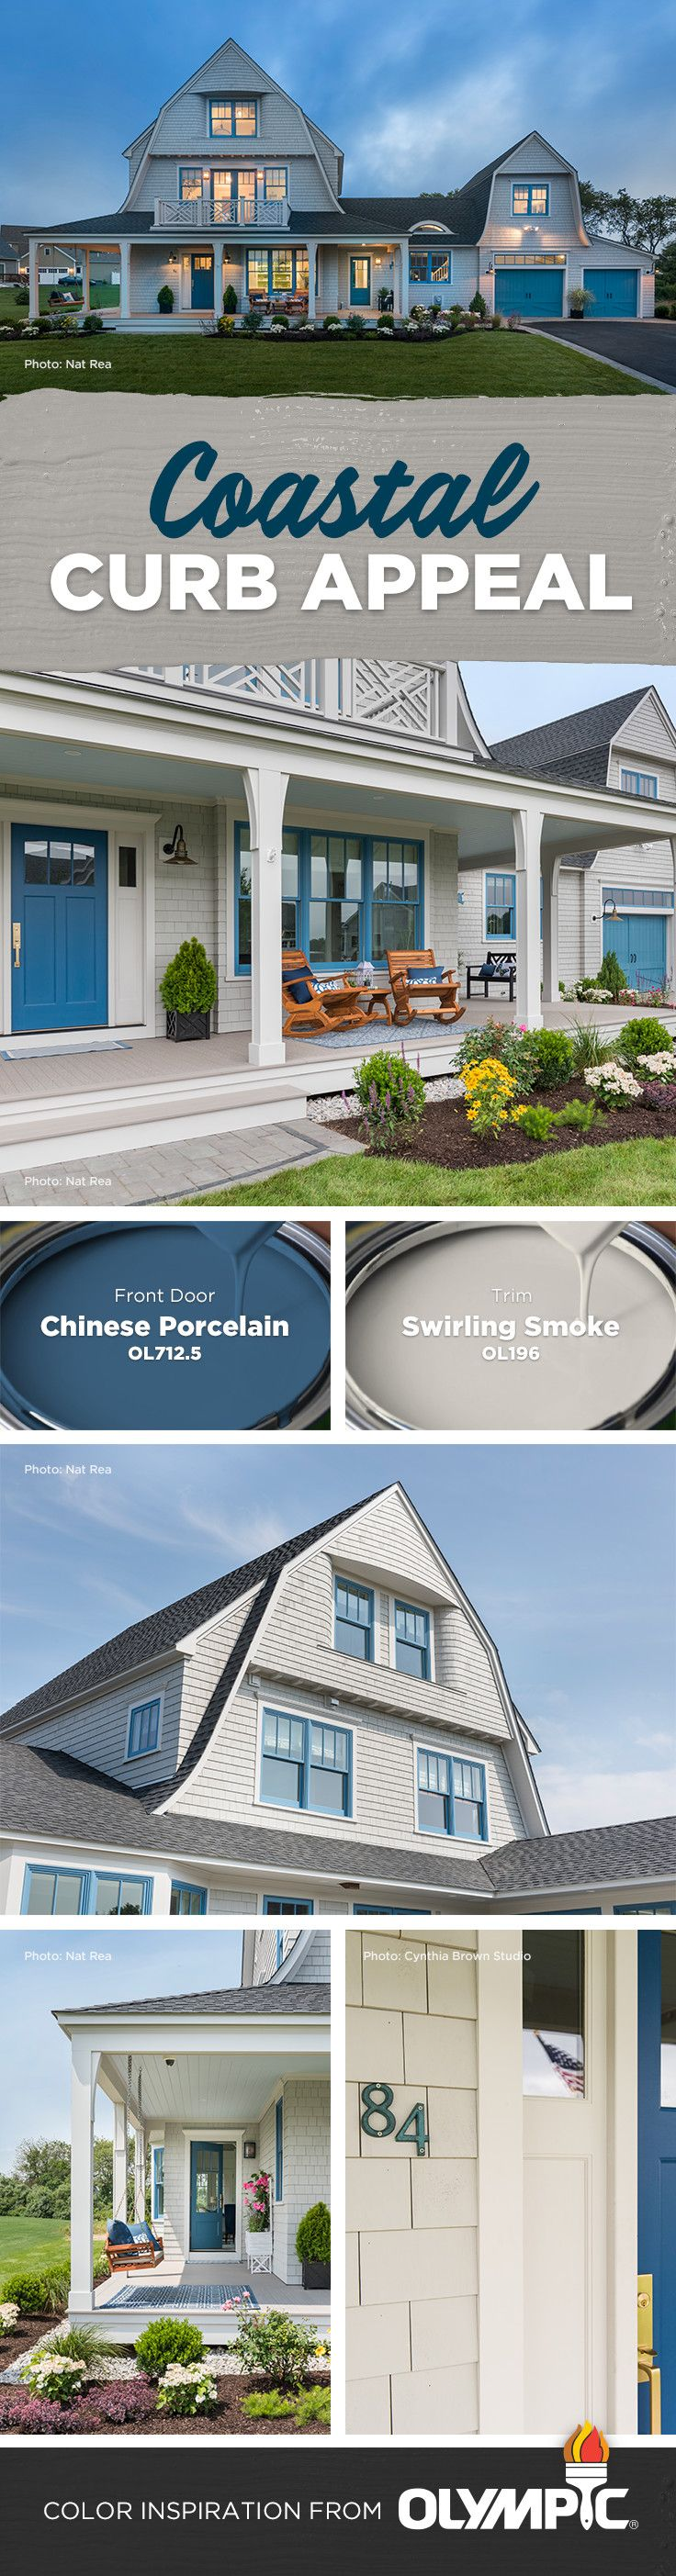 Beach House: Gorgeous Exterior Features | Rhode Island Beaches, Exterior  Colors And Island Beach